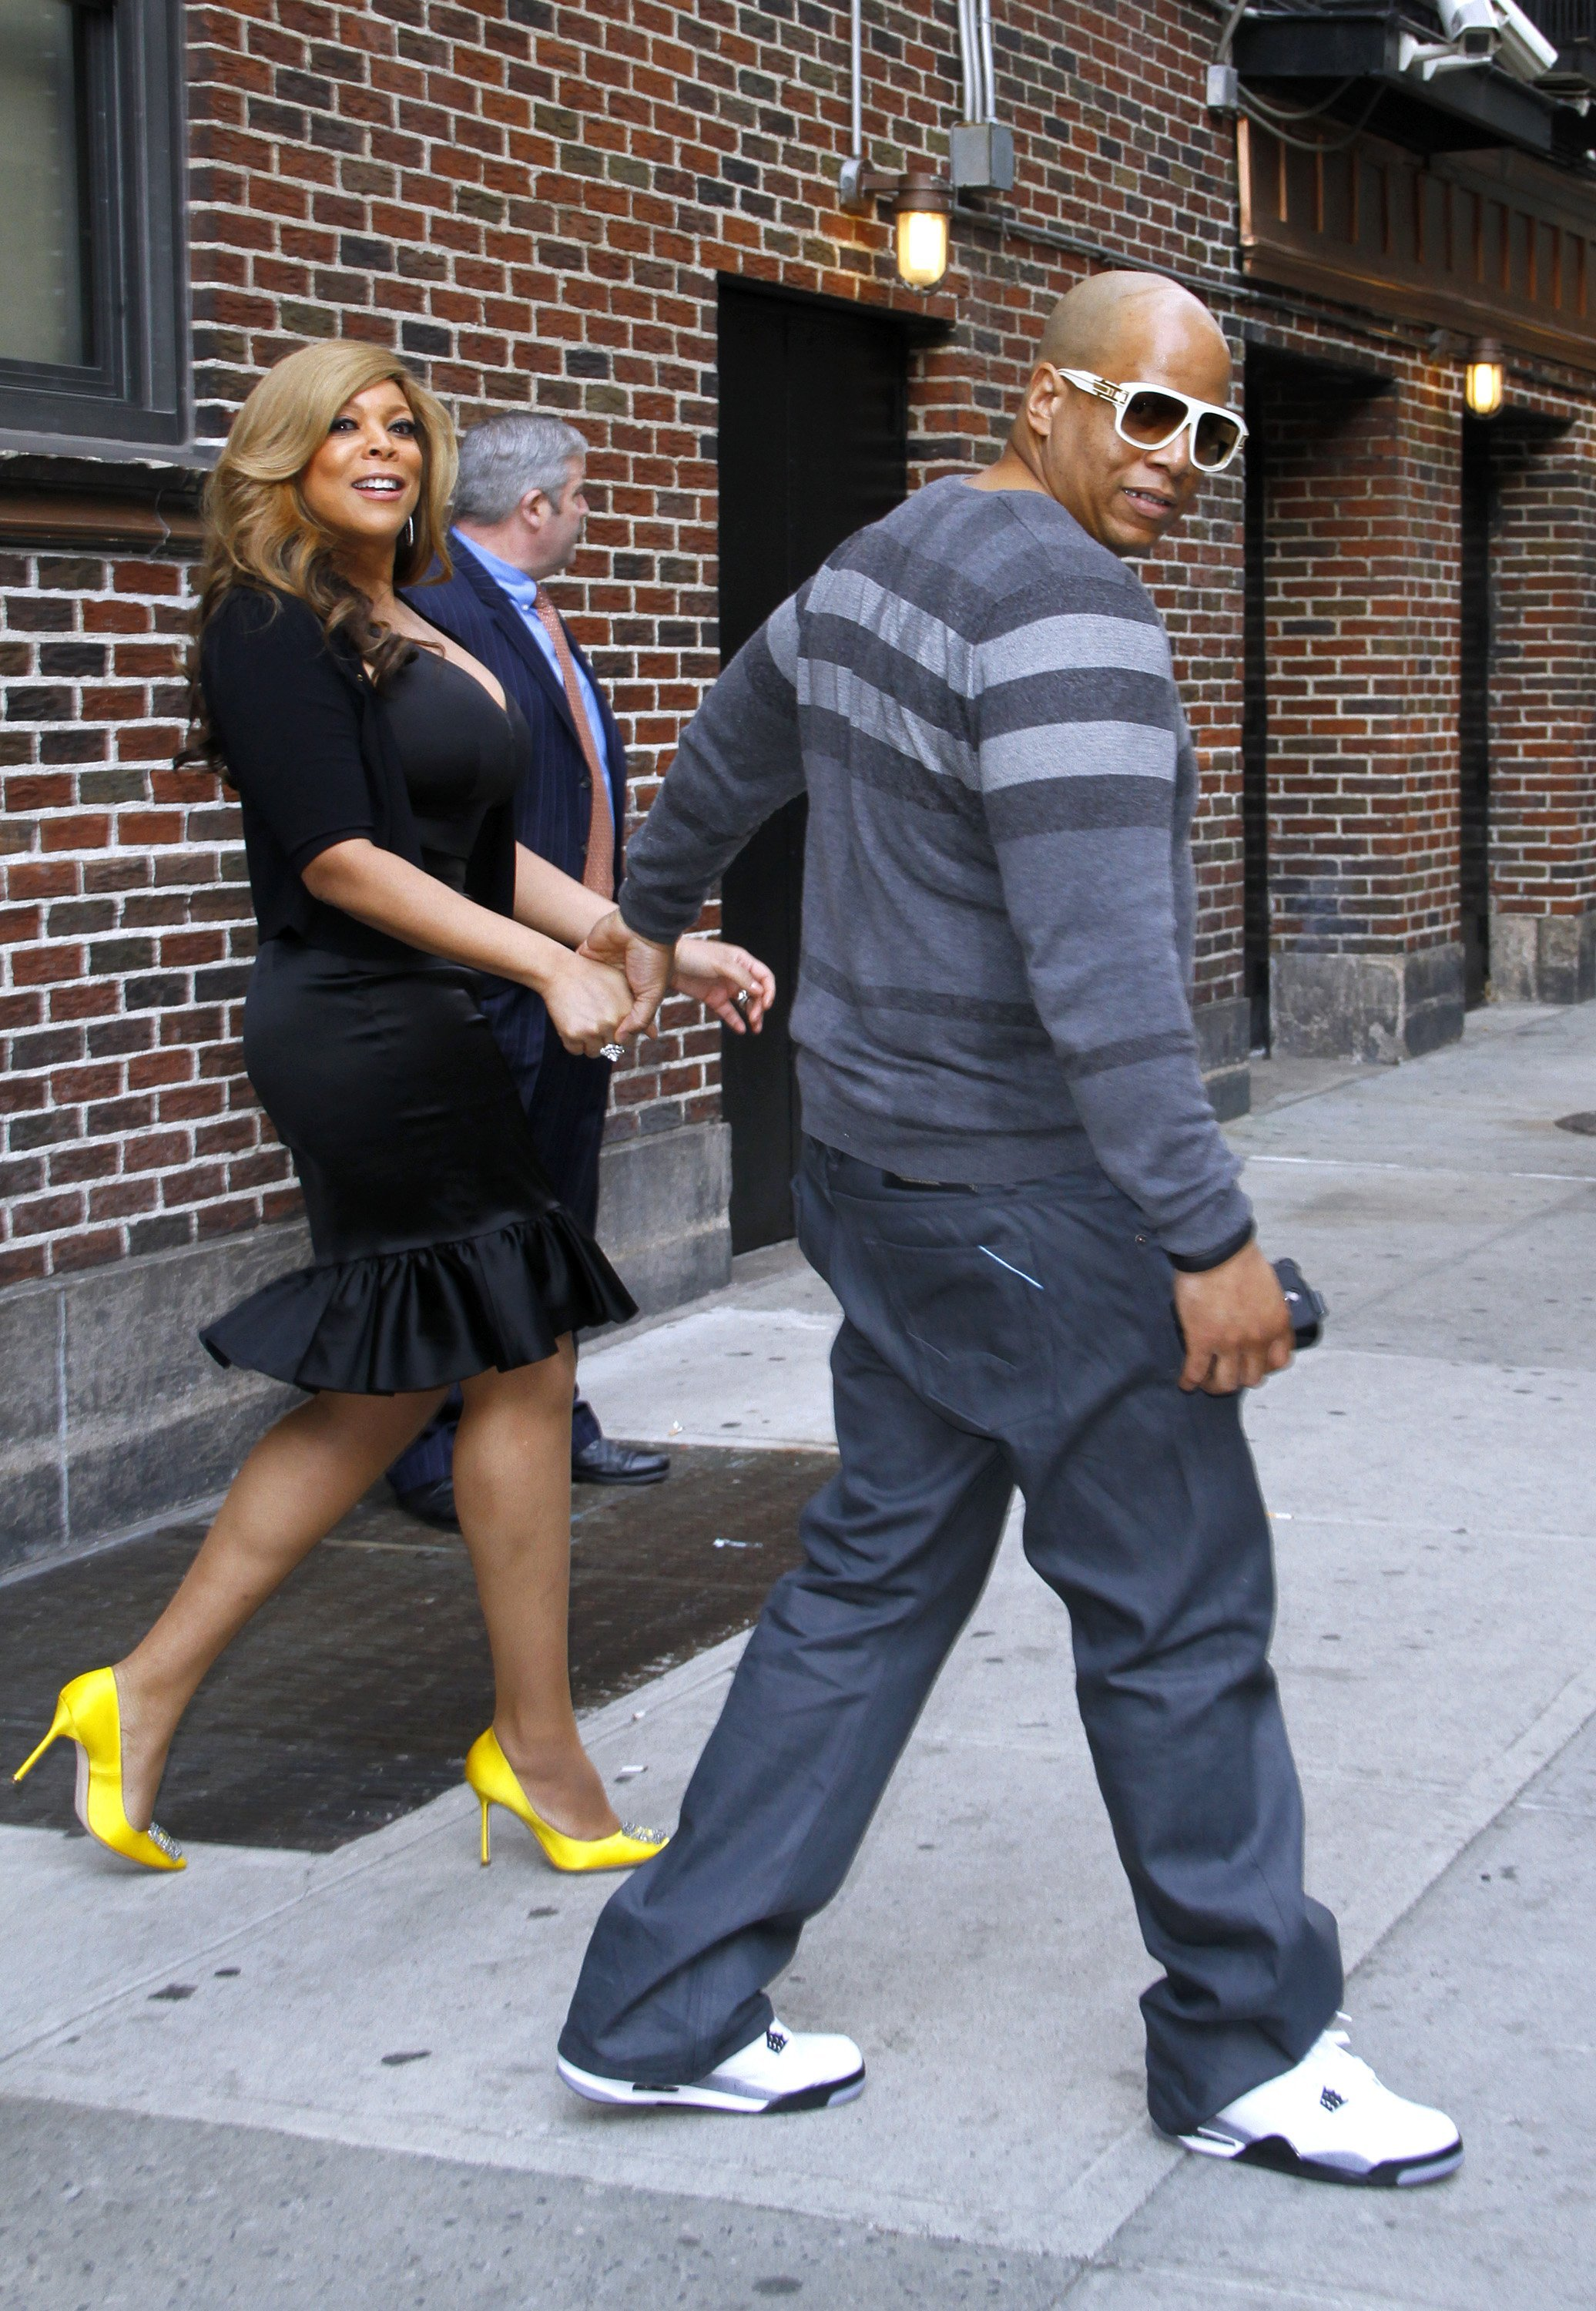 Wendy Williams & Kevin Hunter in New York City on Apr. 24, 2012. | Photo: Getty Images